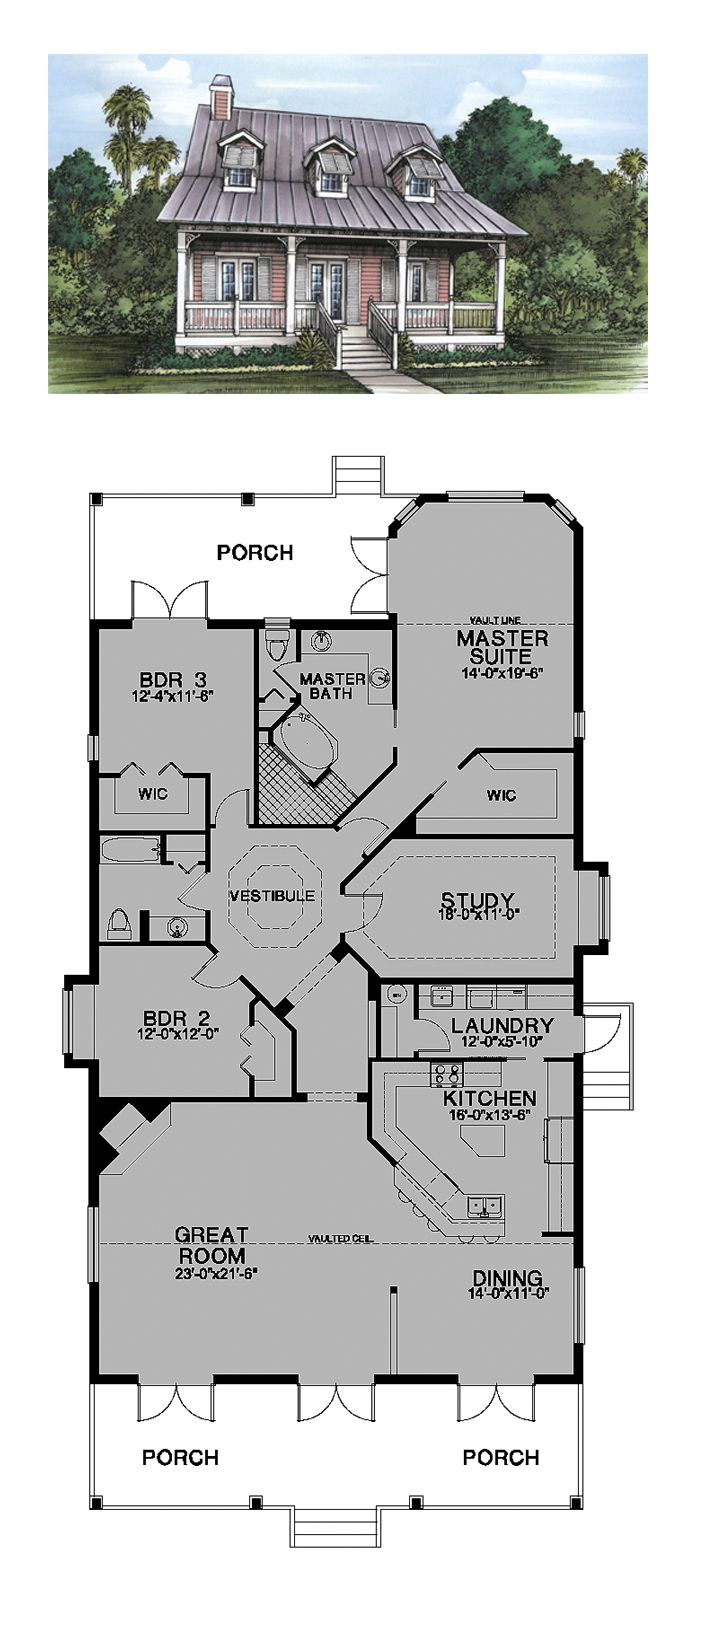 25 Best House Plans Ideas On Pinterest 4 Bedroom House